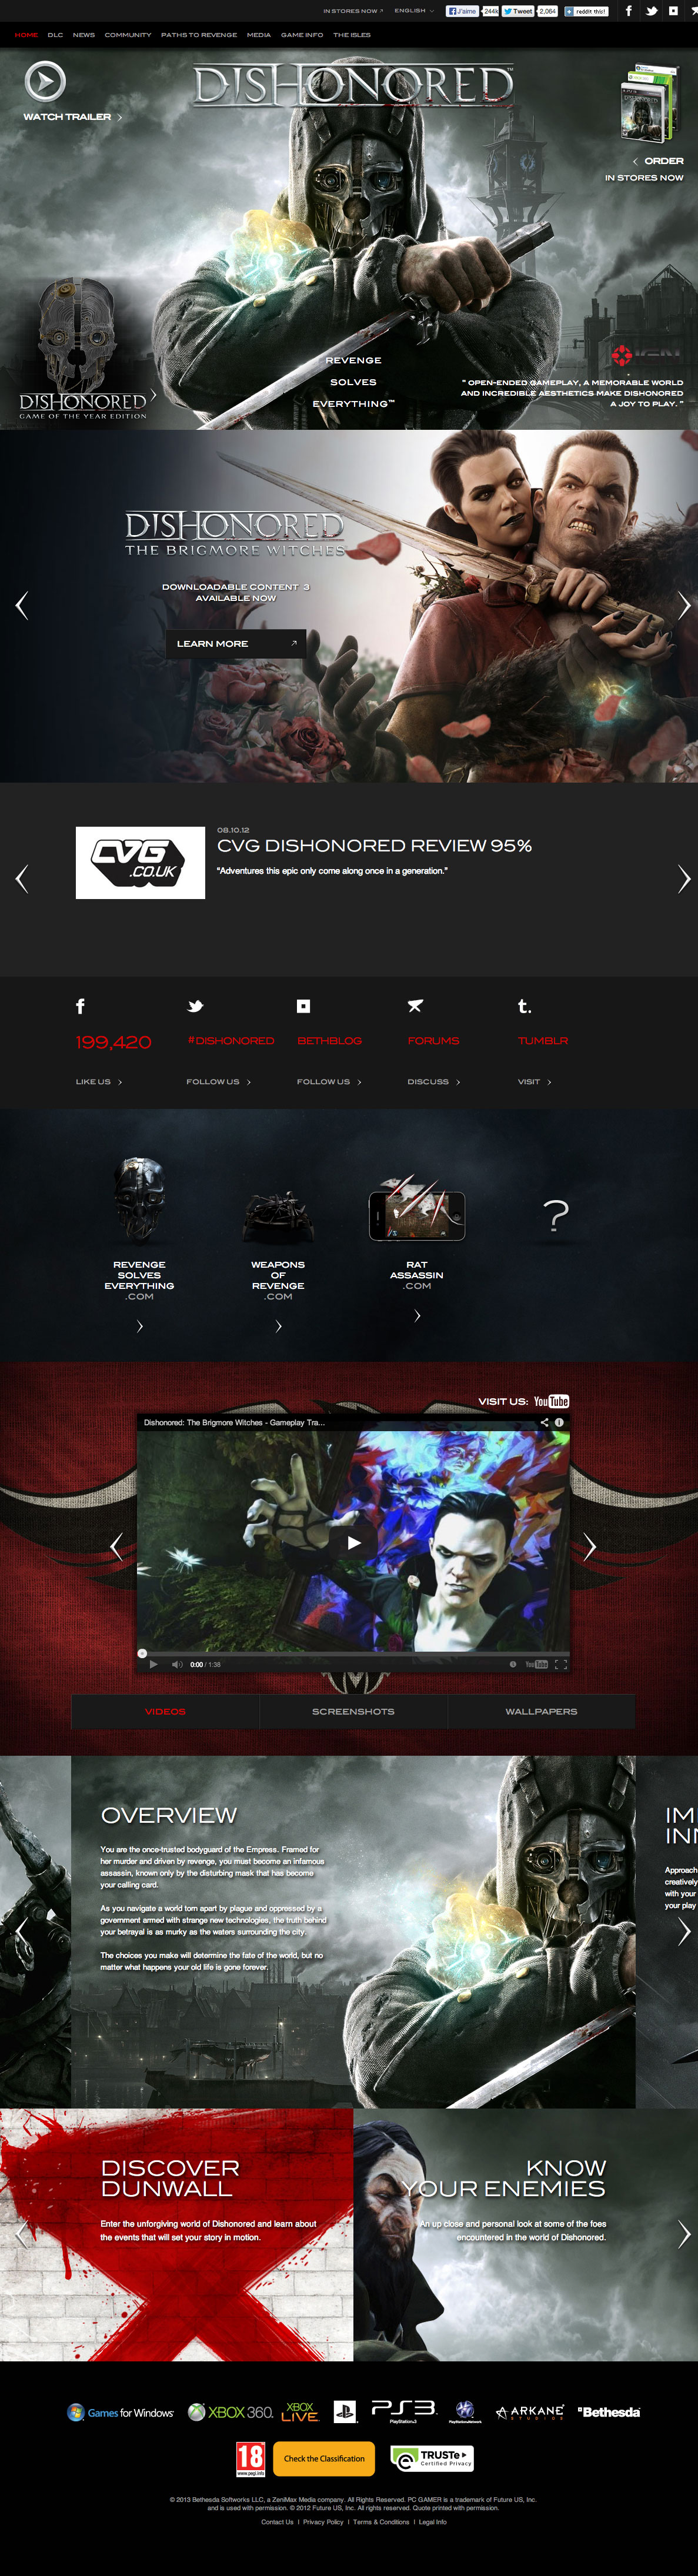 http://www.dishonored.com/